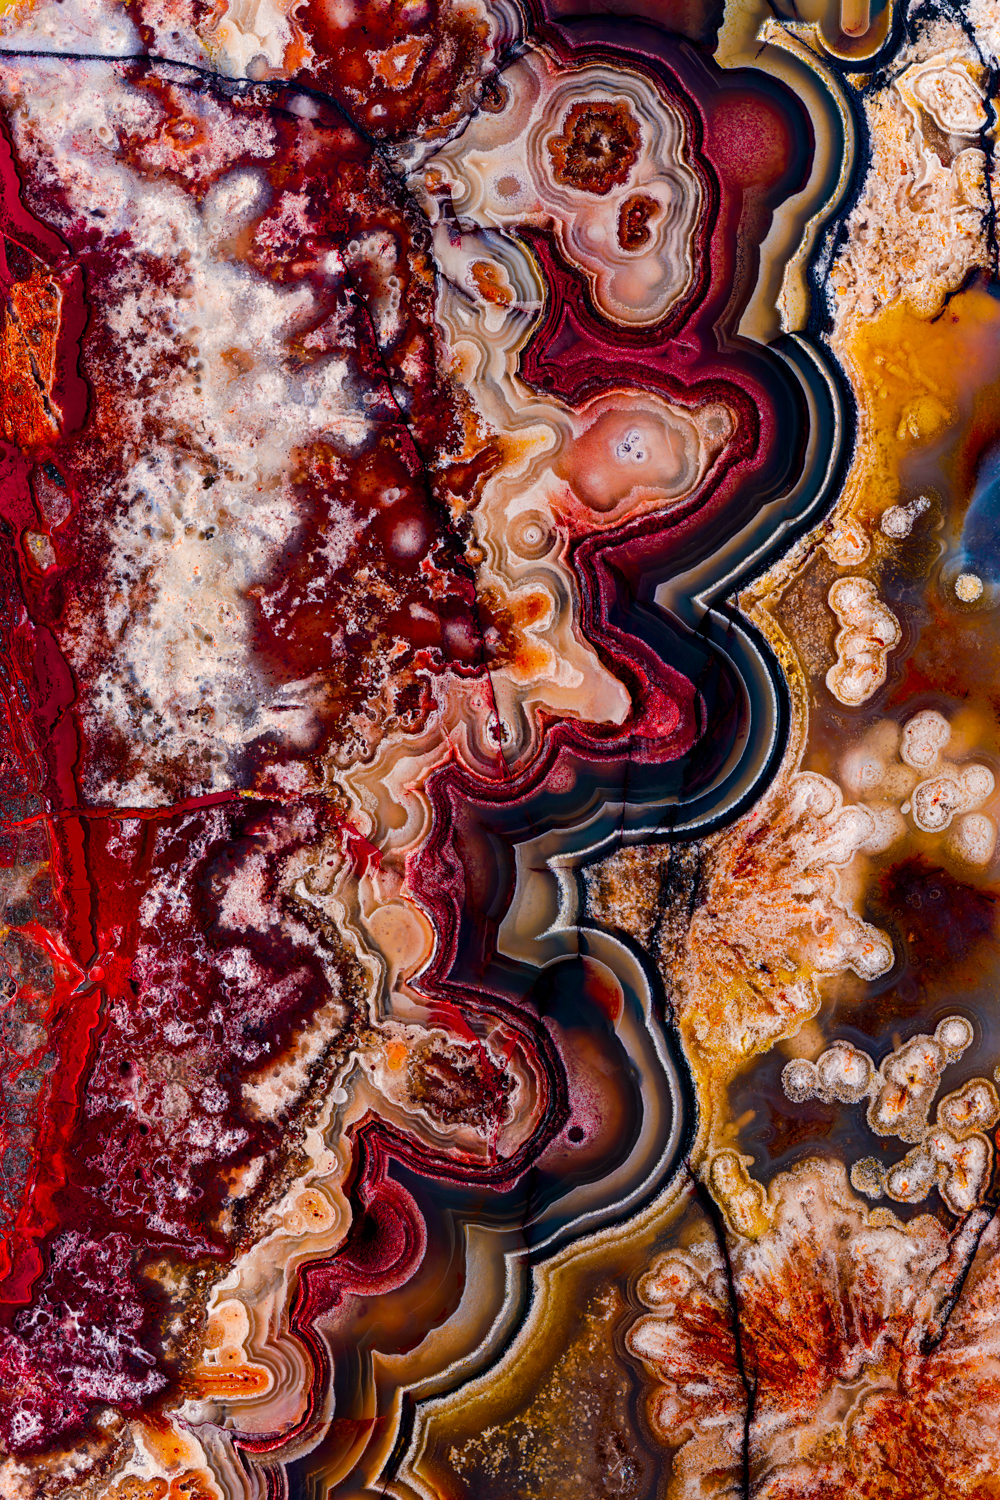 I Combine Tens Of Thousands Of Photos To Create One Image Of A Mineral